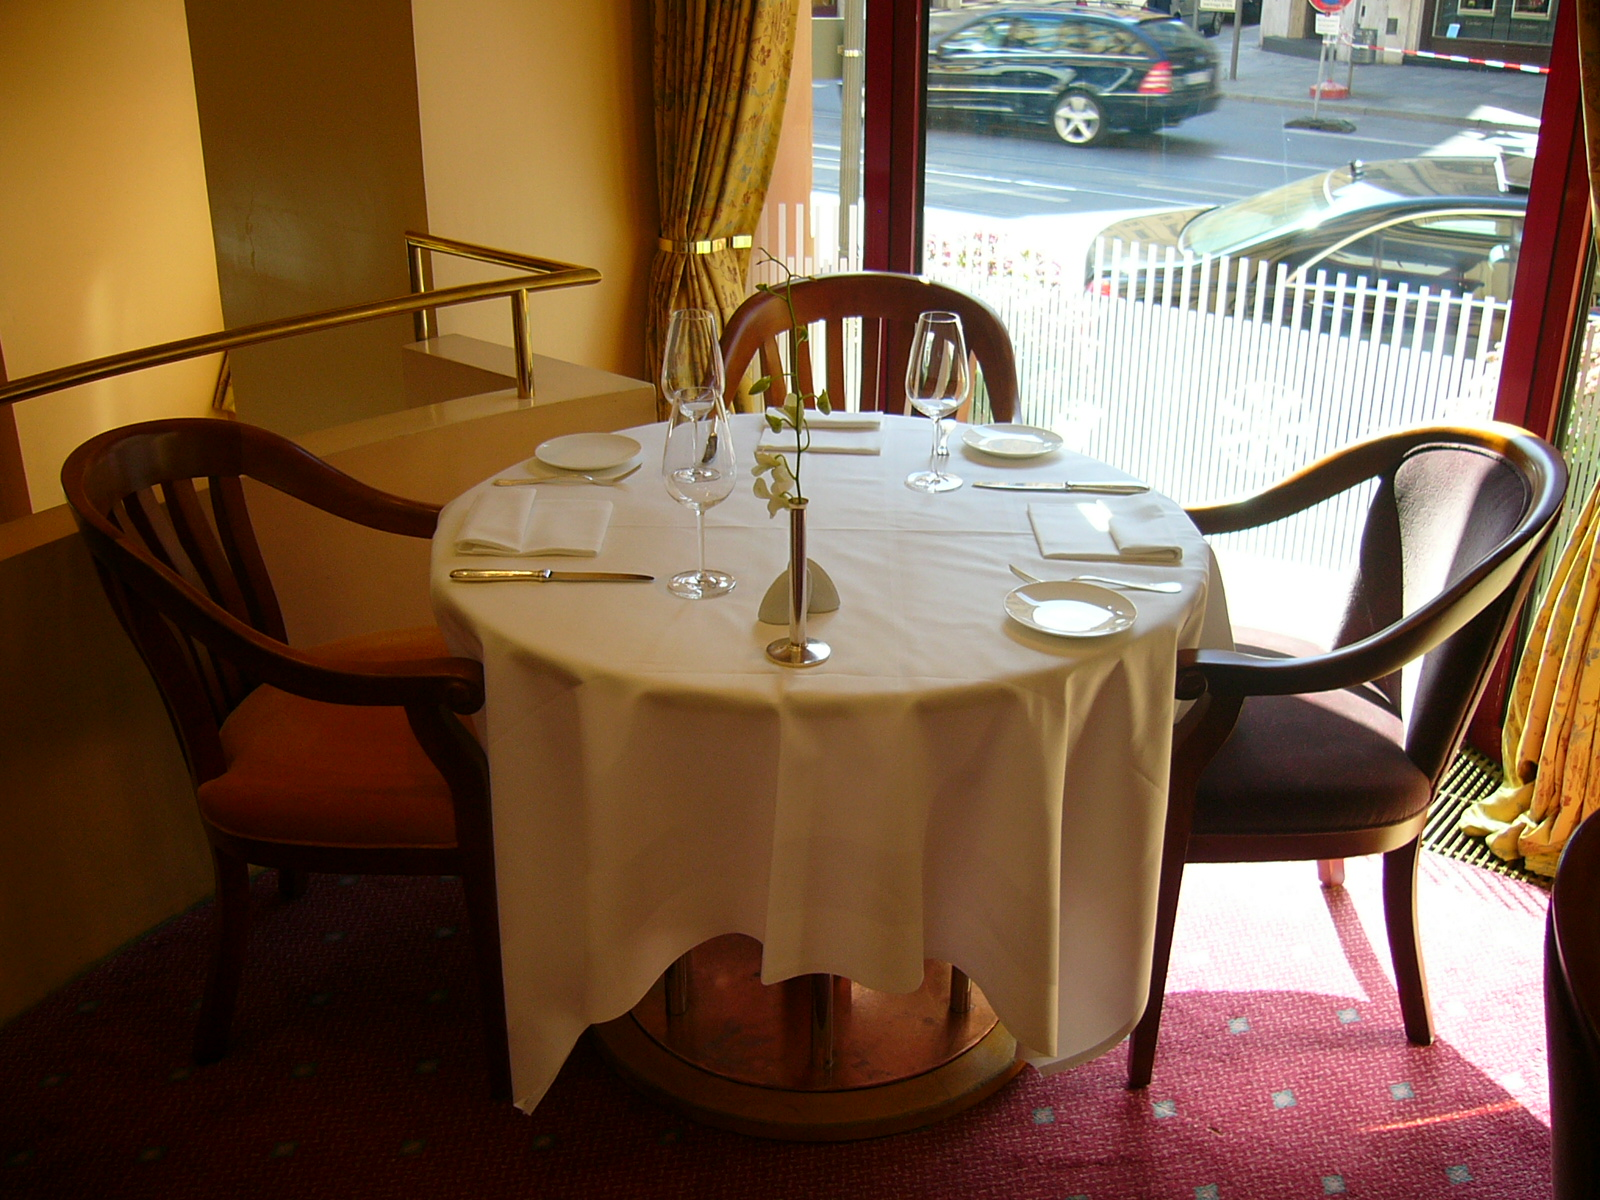 Table In Restaurant : File:Table setting in a restaurant.JPG - Wikimedia Commons